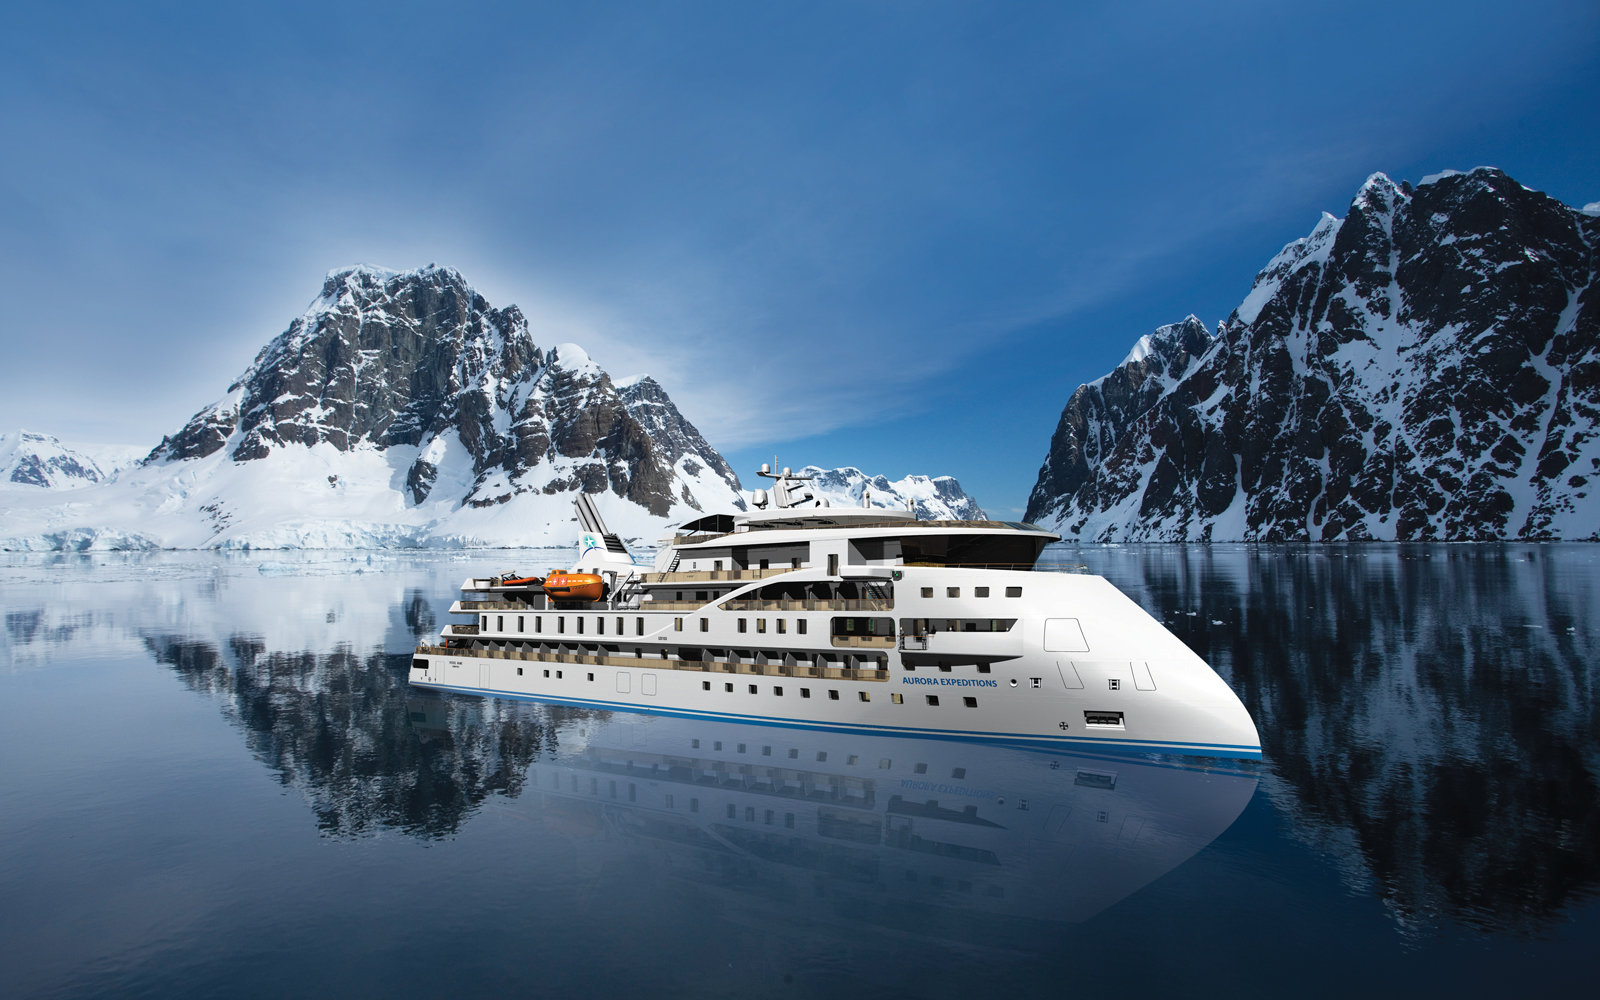 Aurora Expeditions new ship, the Greg Mortimer